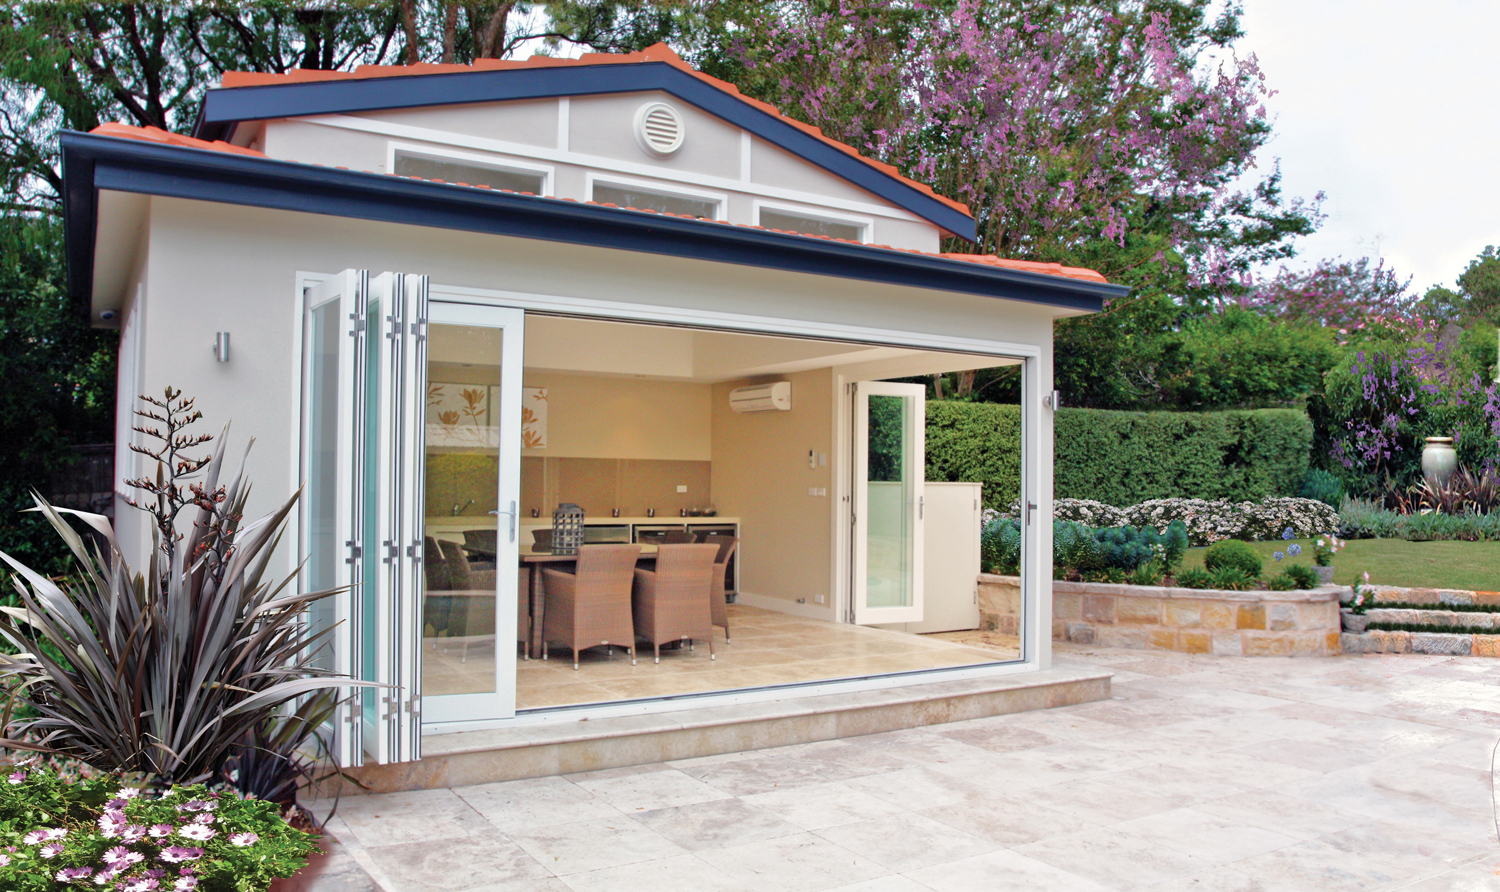 Cabanas: Bringing the outdoors in